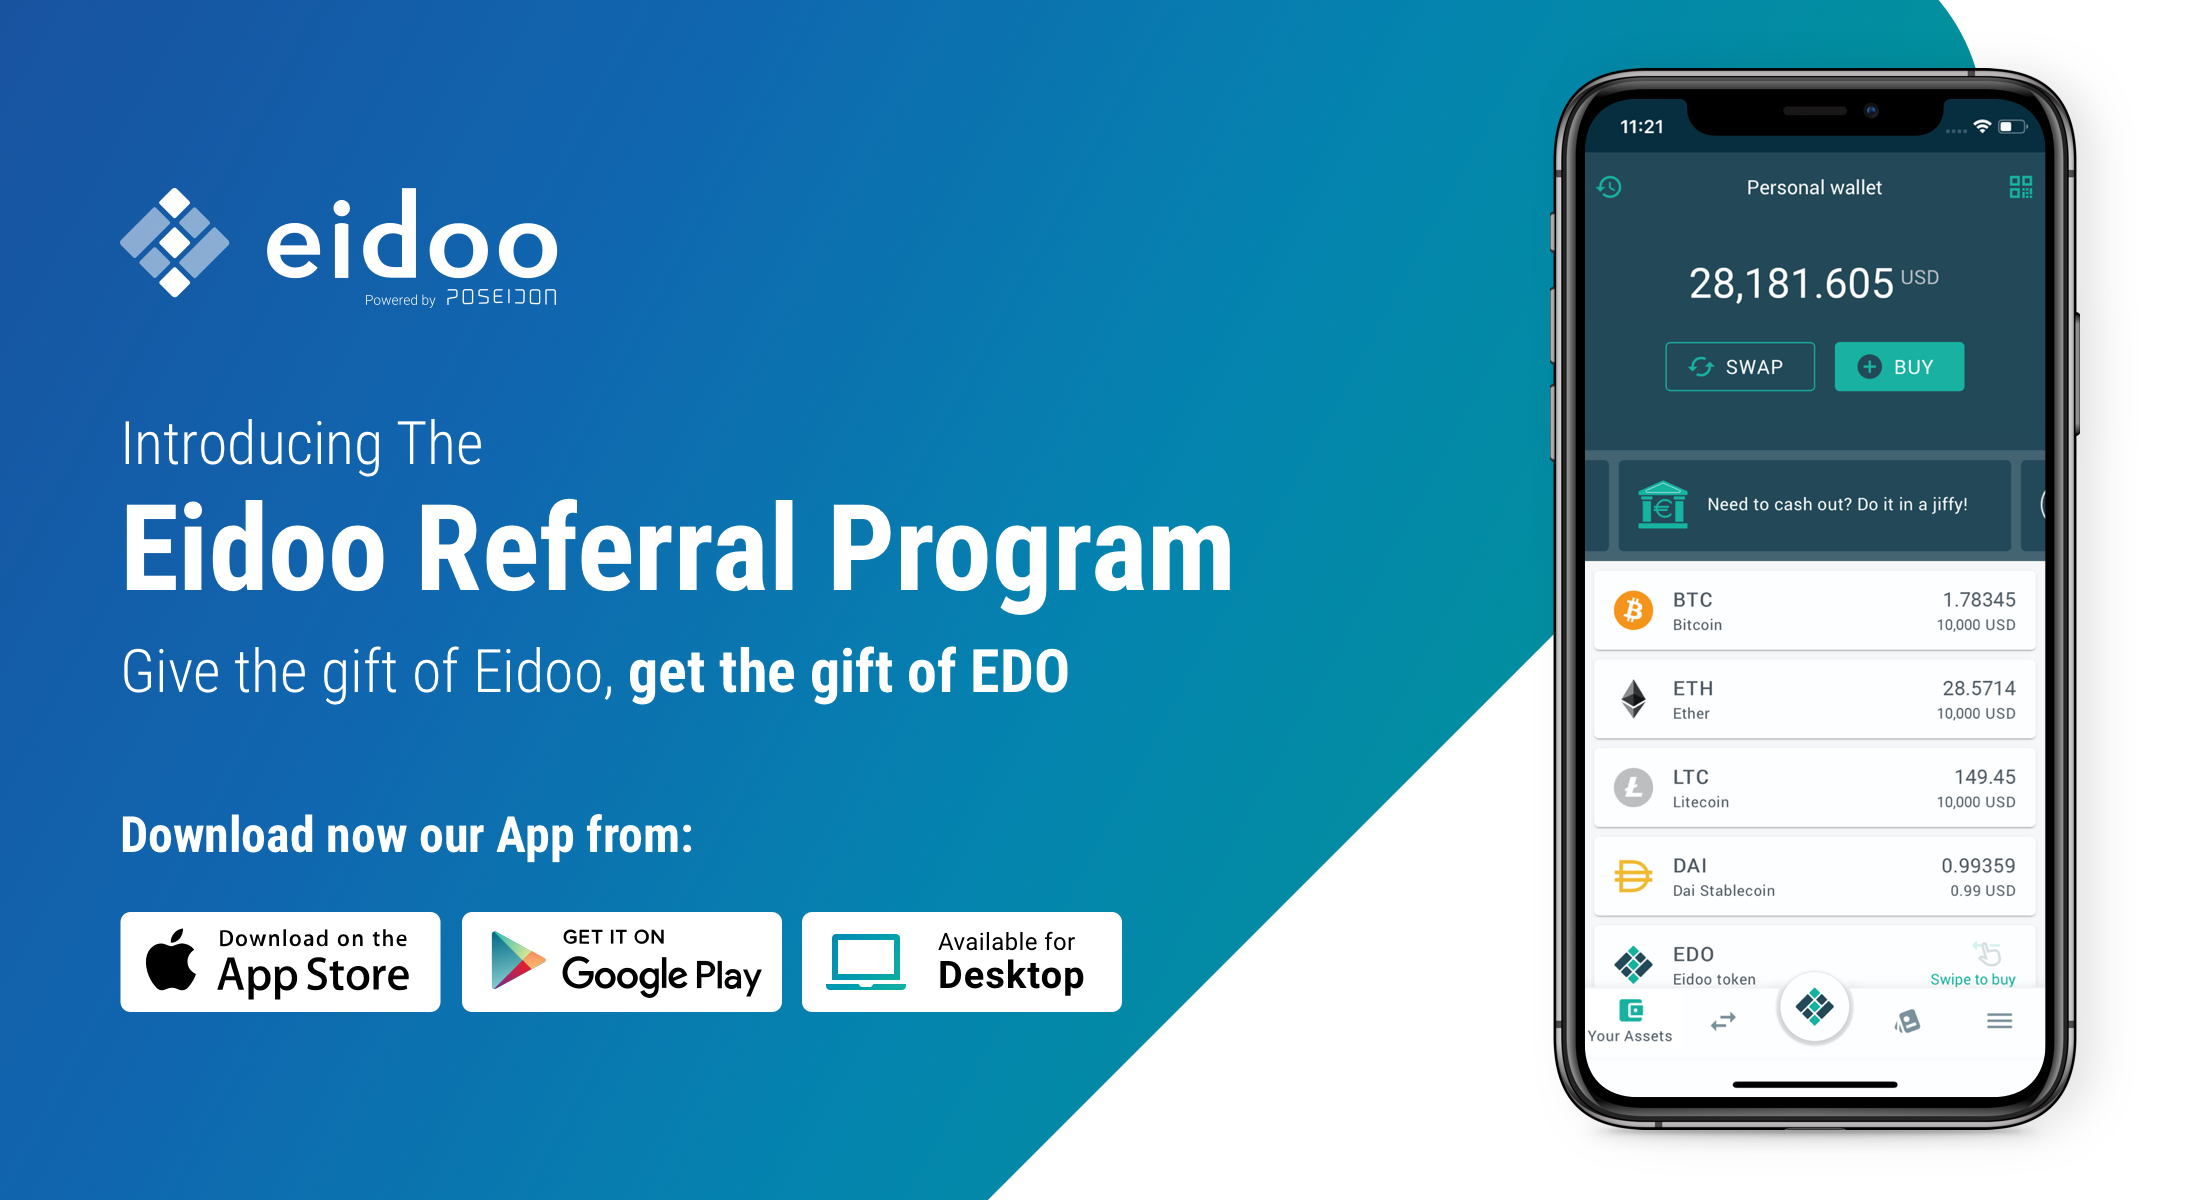 Eidoo Referral Program